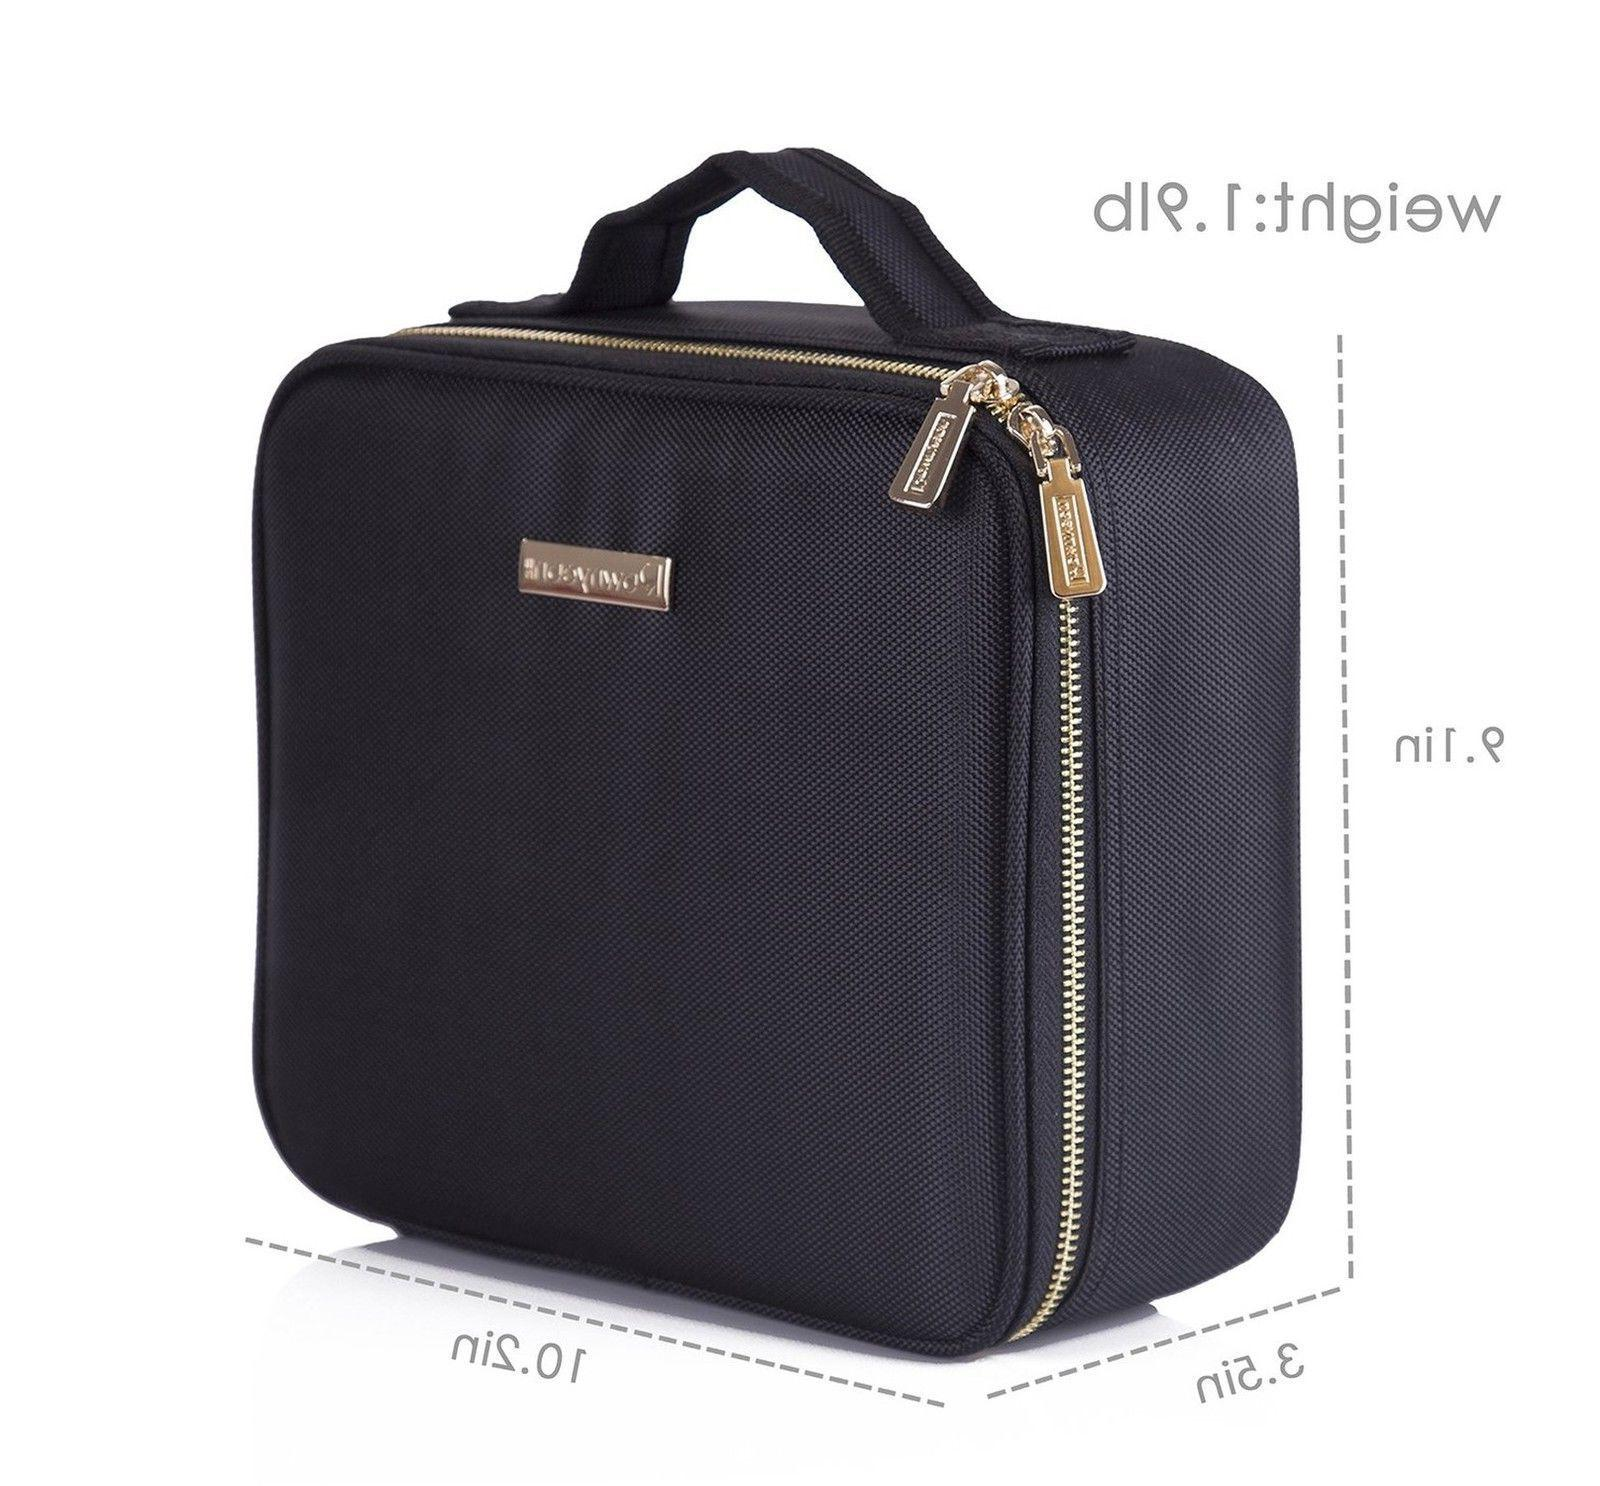 ROWNYEON Professional Case/Travel Bag